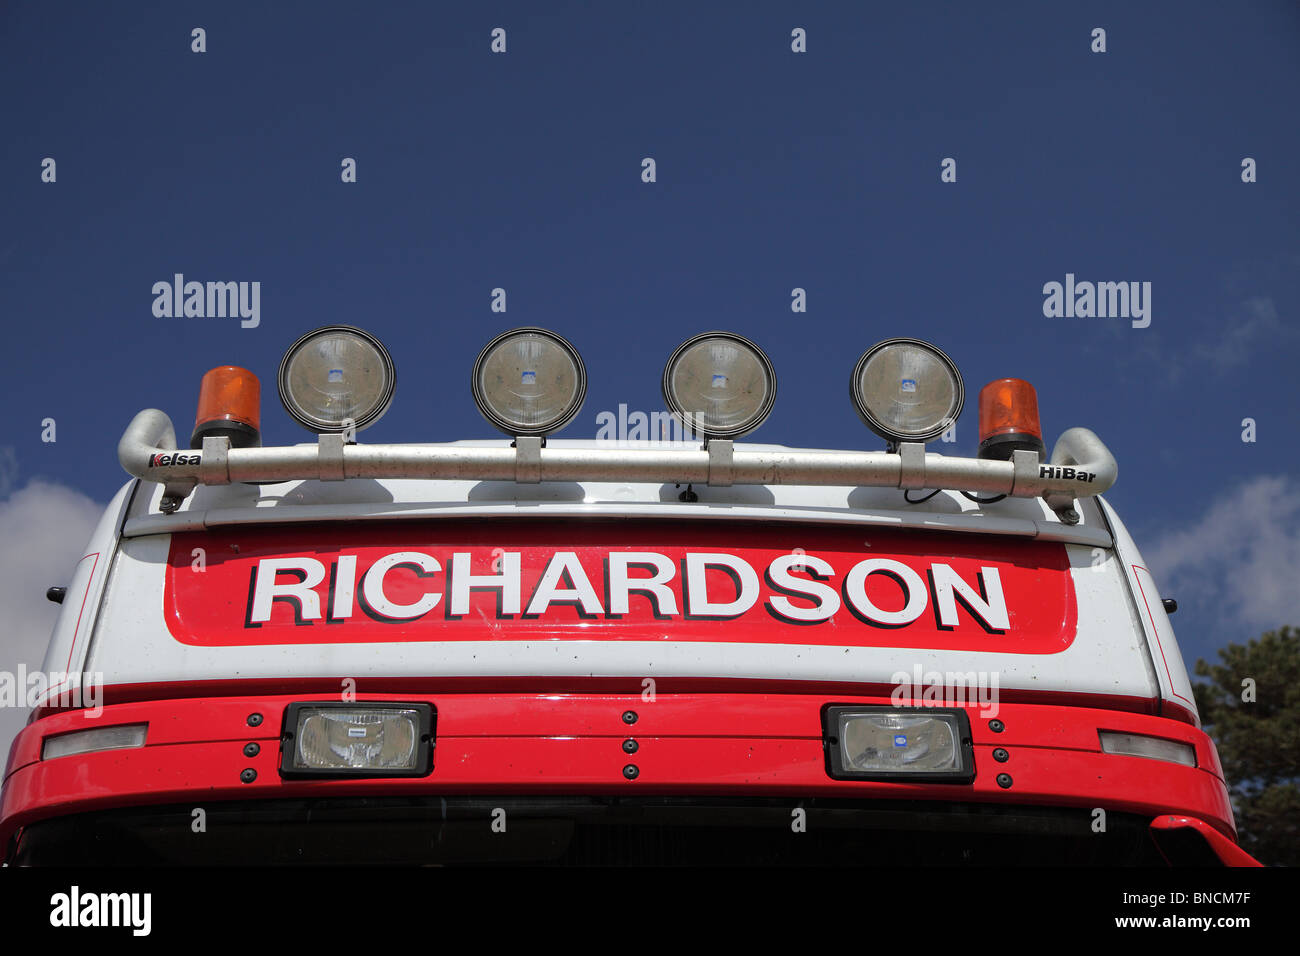 Lorry roof headlamps for Richardson company - Stock Image